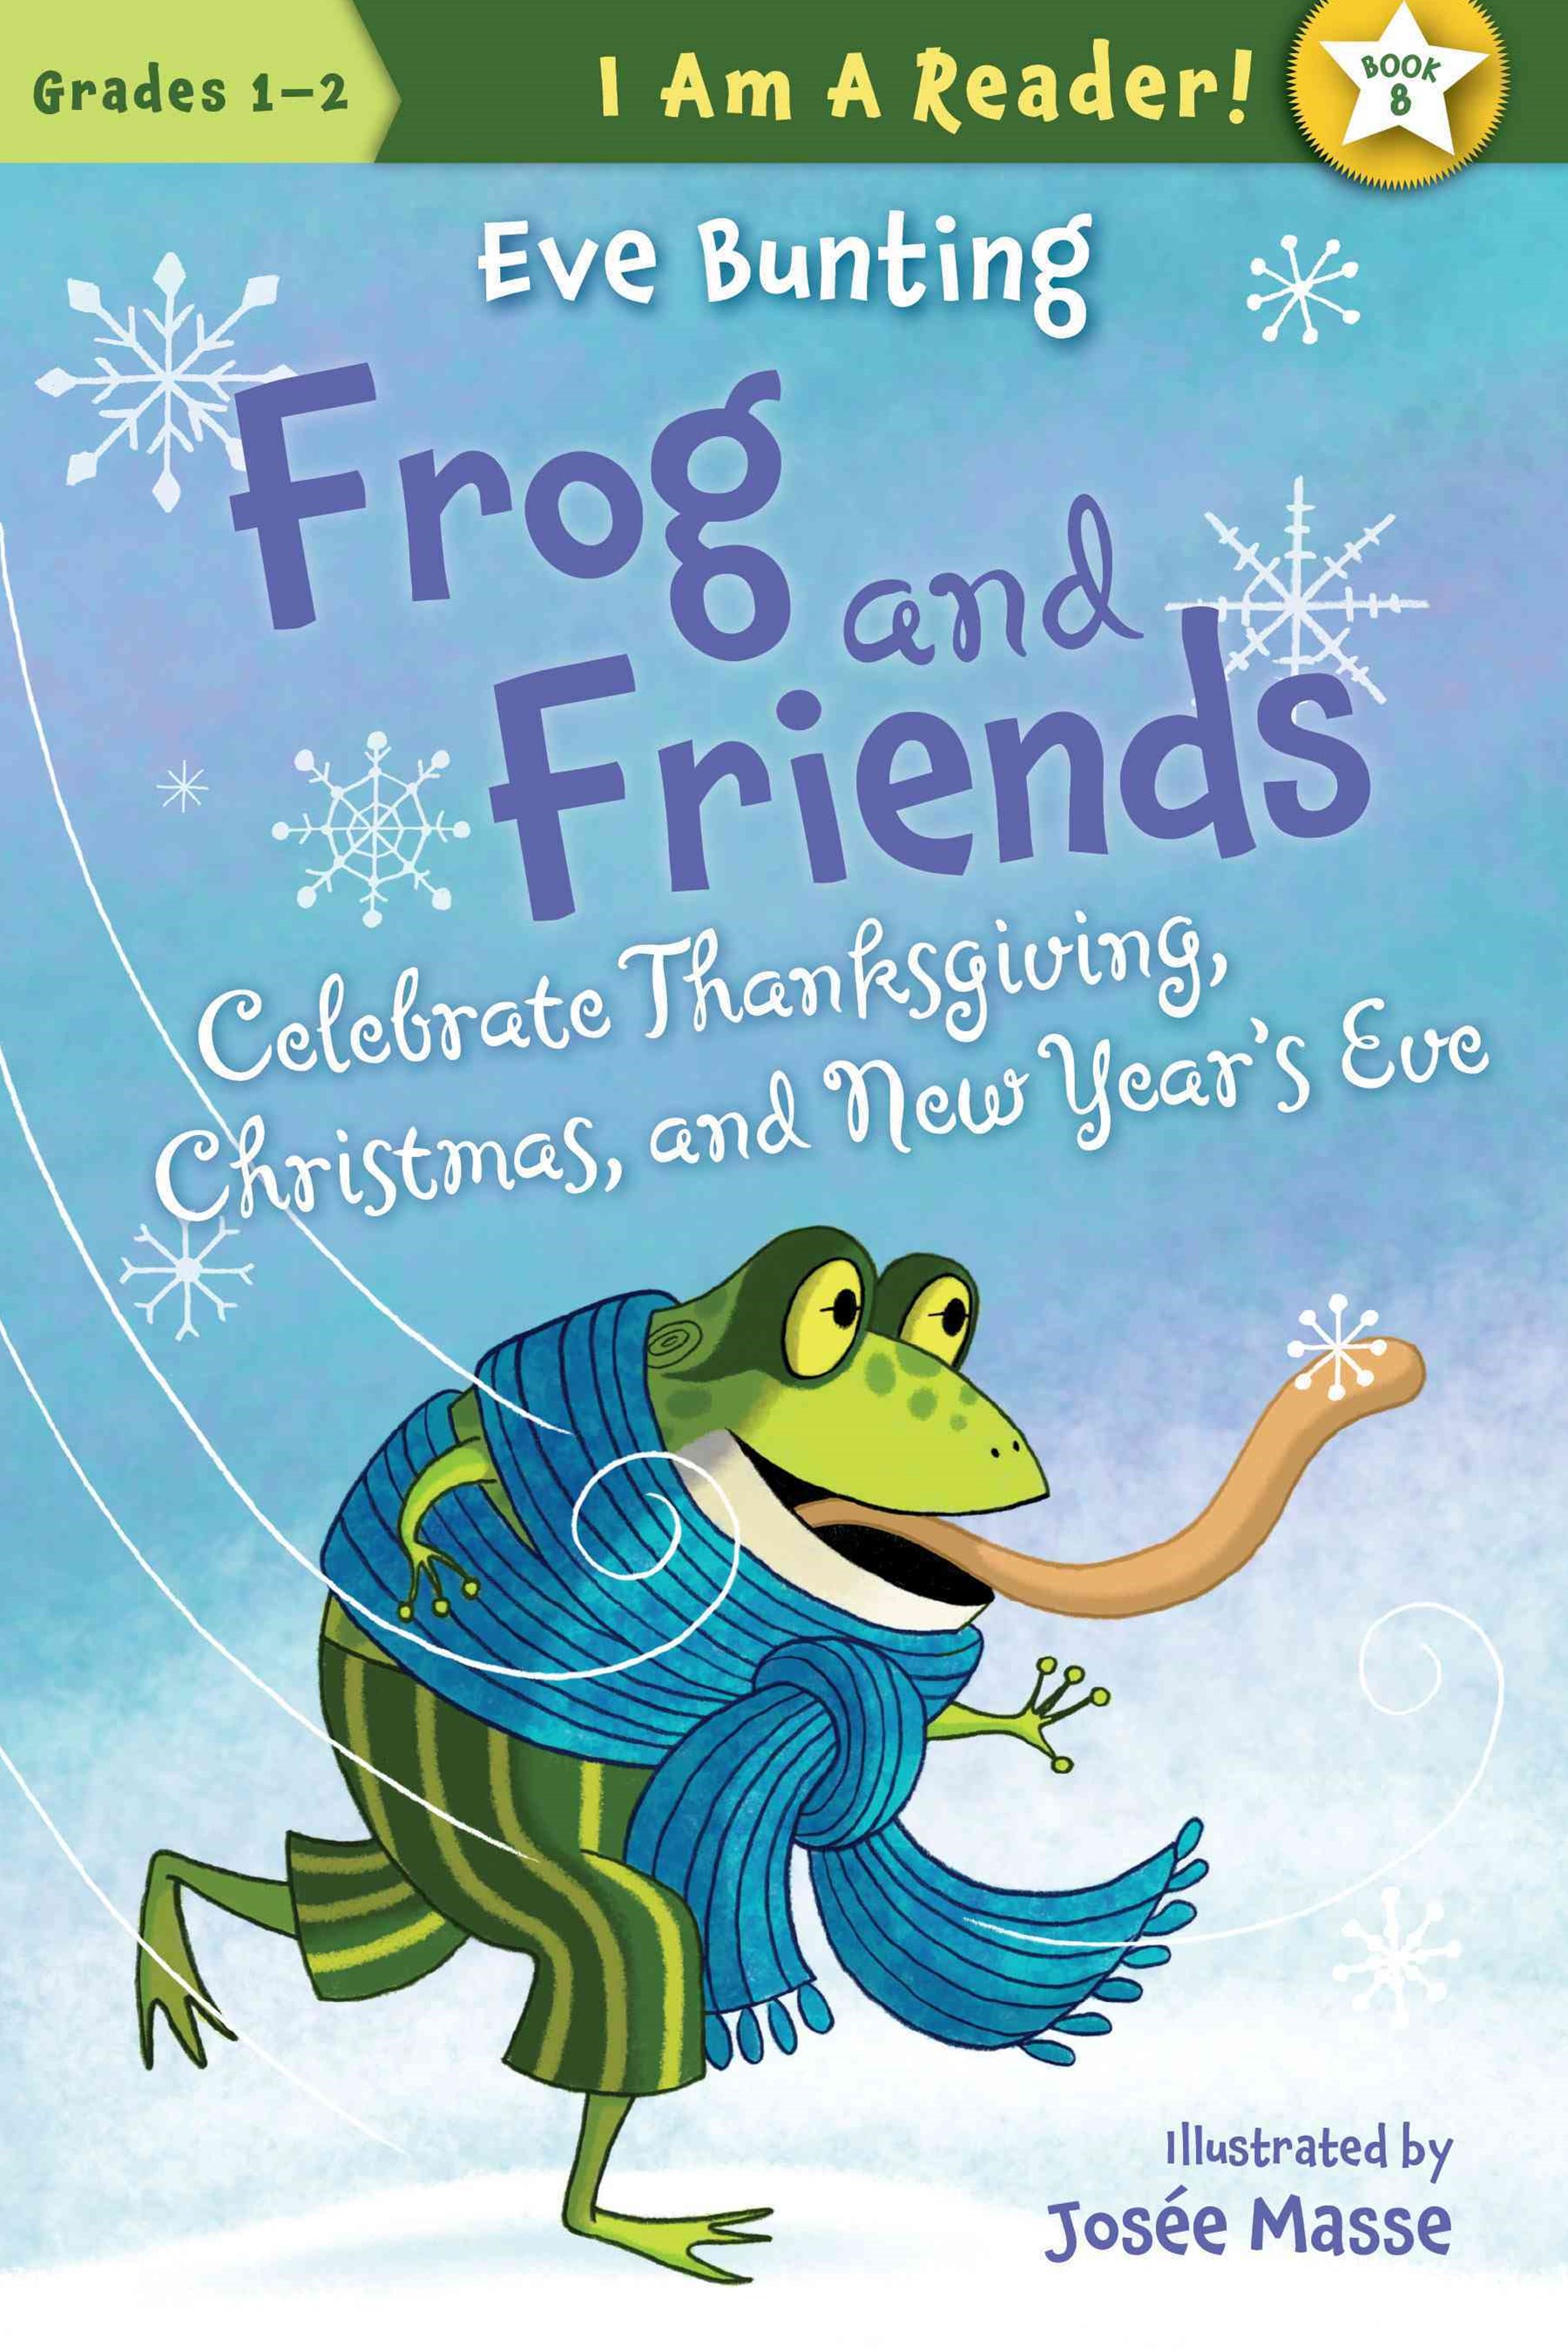 Frog and Friends Celebrate Thanksgiving, Christmas, and New Year's Eve